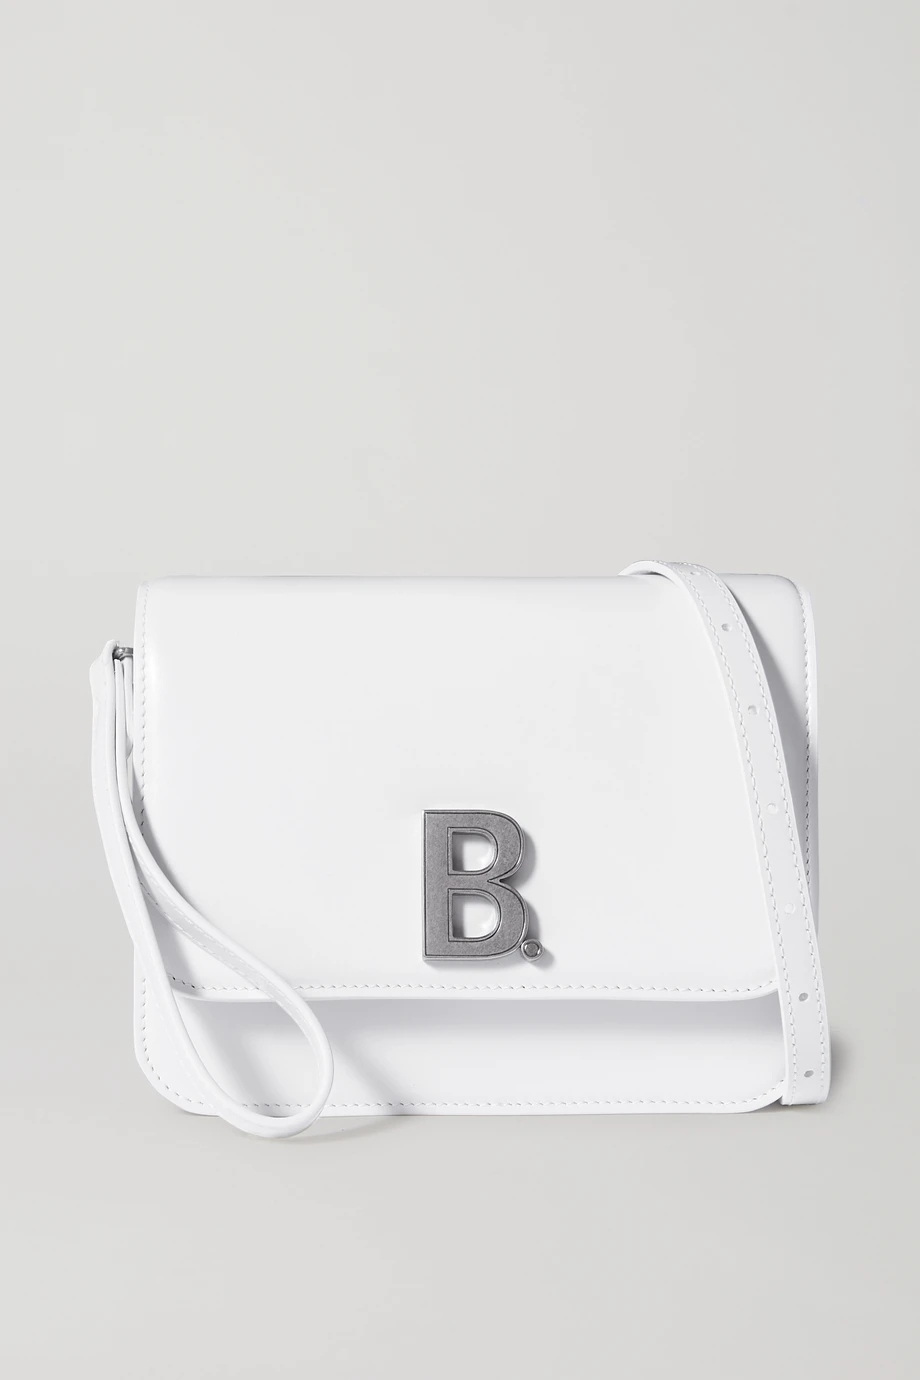 balenciaga-b-dot-small-leather-shoulder-bag-white